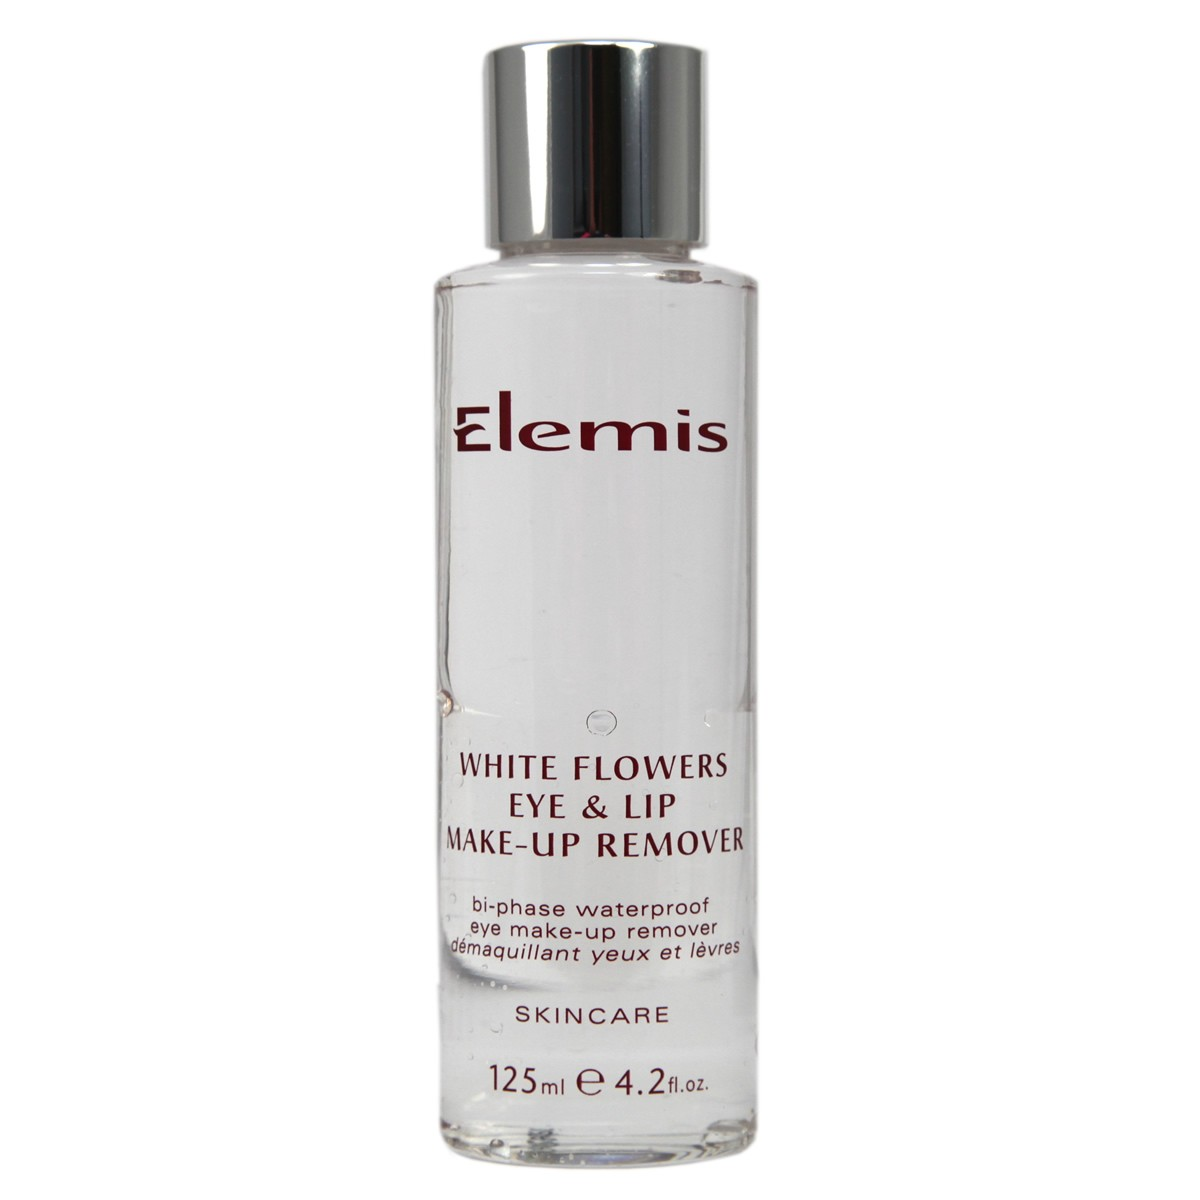 Elemis White Flowers Eye & Lip Make-up Remover